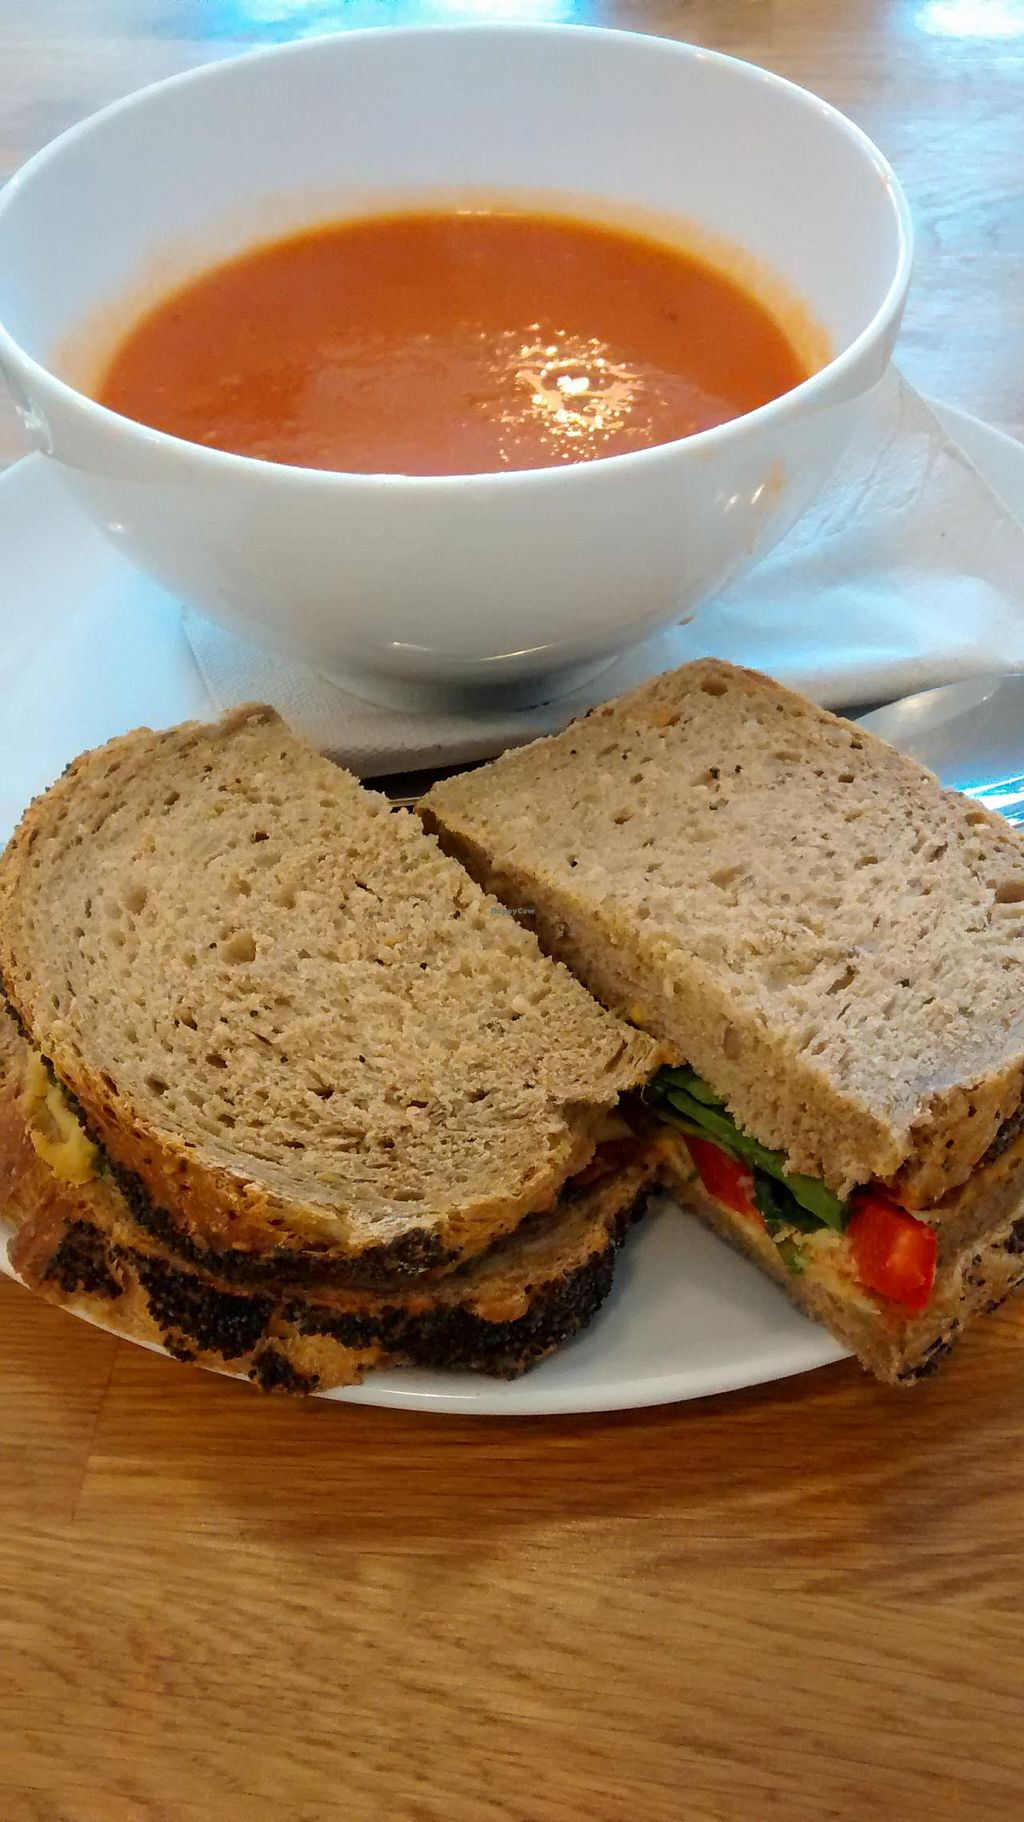 """Photo of CLOSED: Meadowlark No. 39  by <a href=""""/members/profile/craigmc"""">craigmc</a> <br/>Red pepper soup with harissa, and a houmous and ted pepper sandwich. Tasty <br/> April 17, 2014  - <a href='/contact/abuse/image/46150/67779'>Report</a>"""